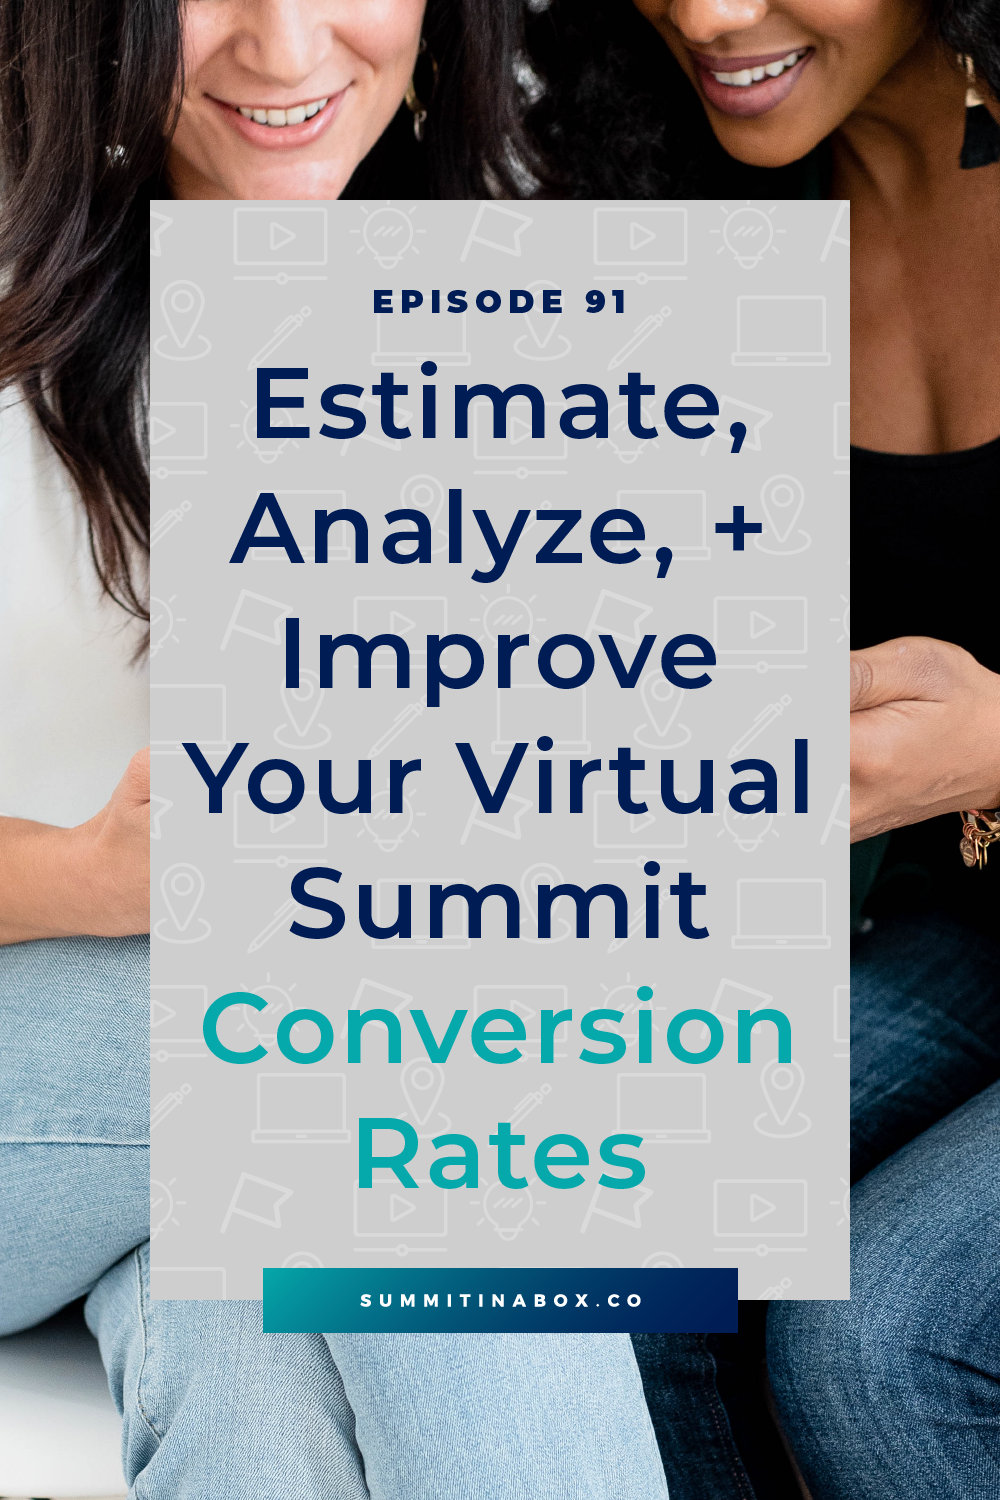 Learn everything you need to know about estimating, analyzing, and improving your virtual summit conversion rates.